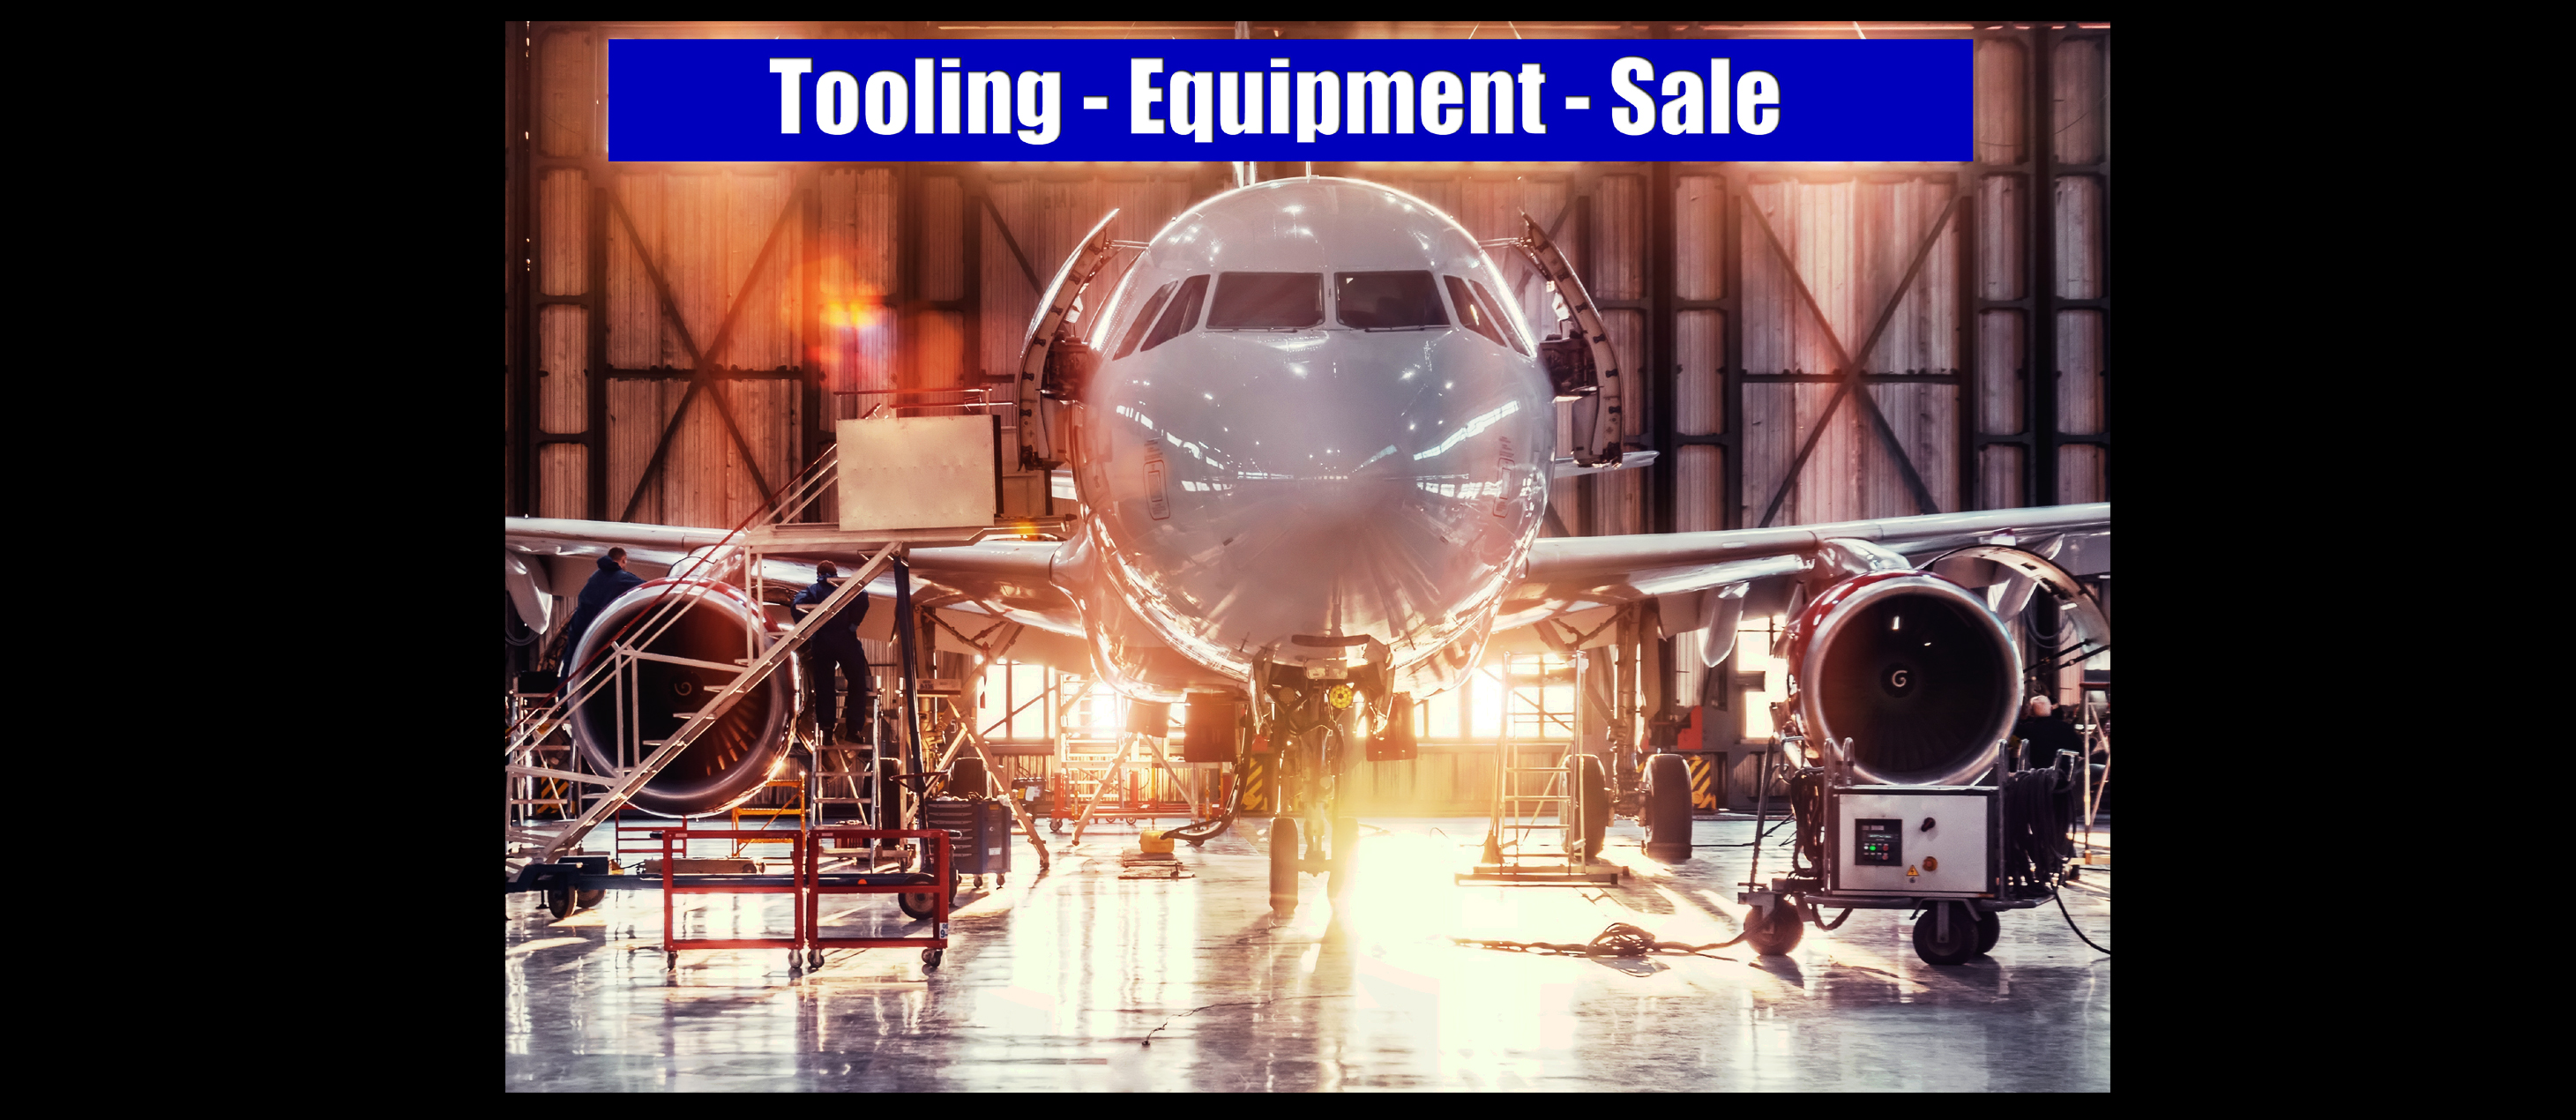 Tooling Equipment Sale